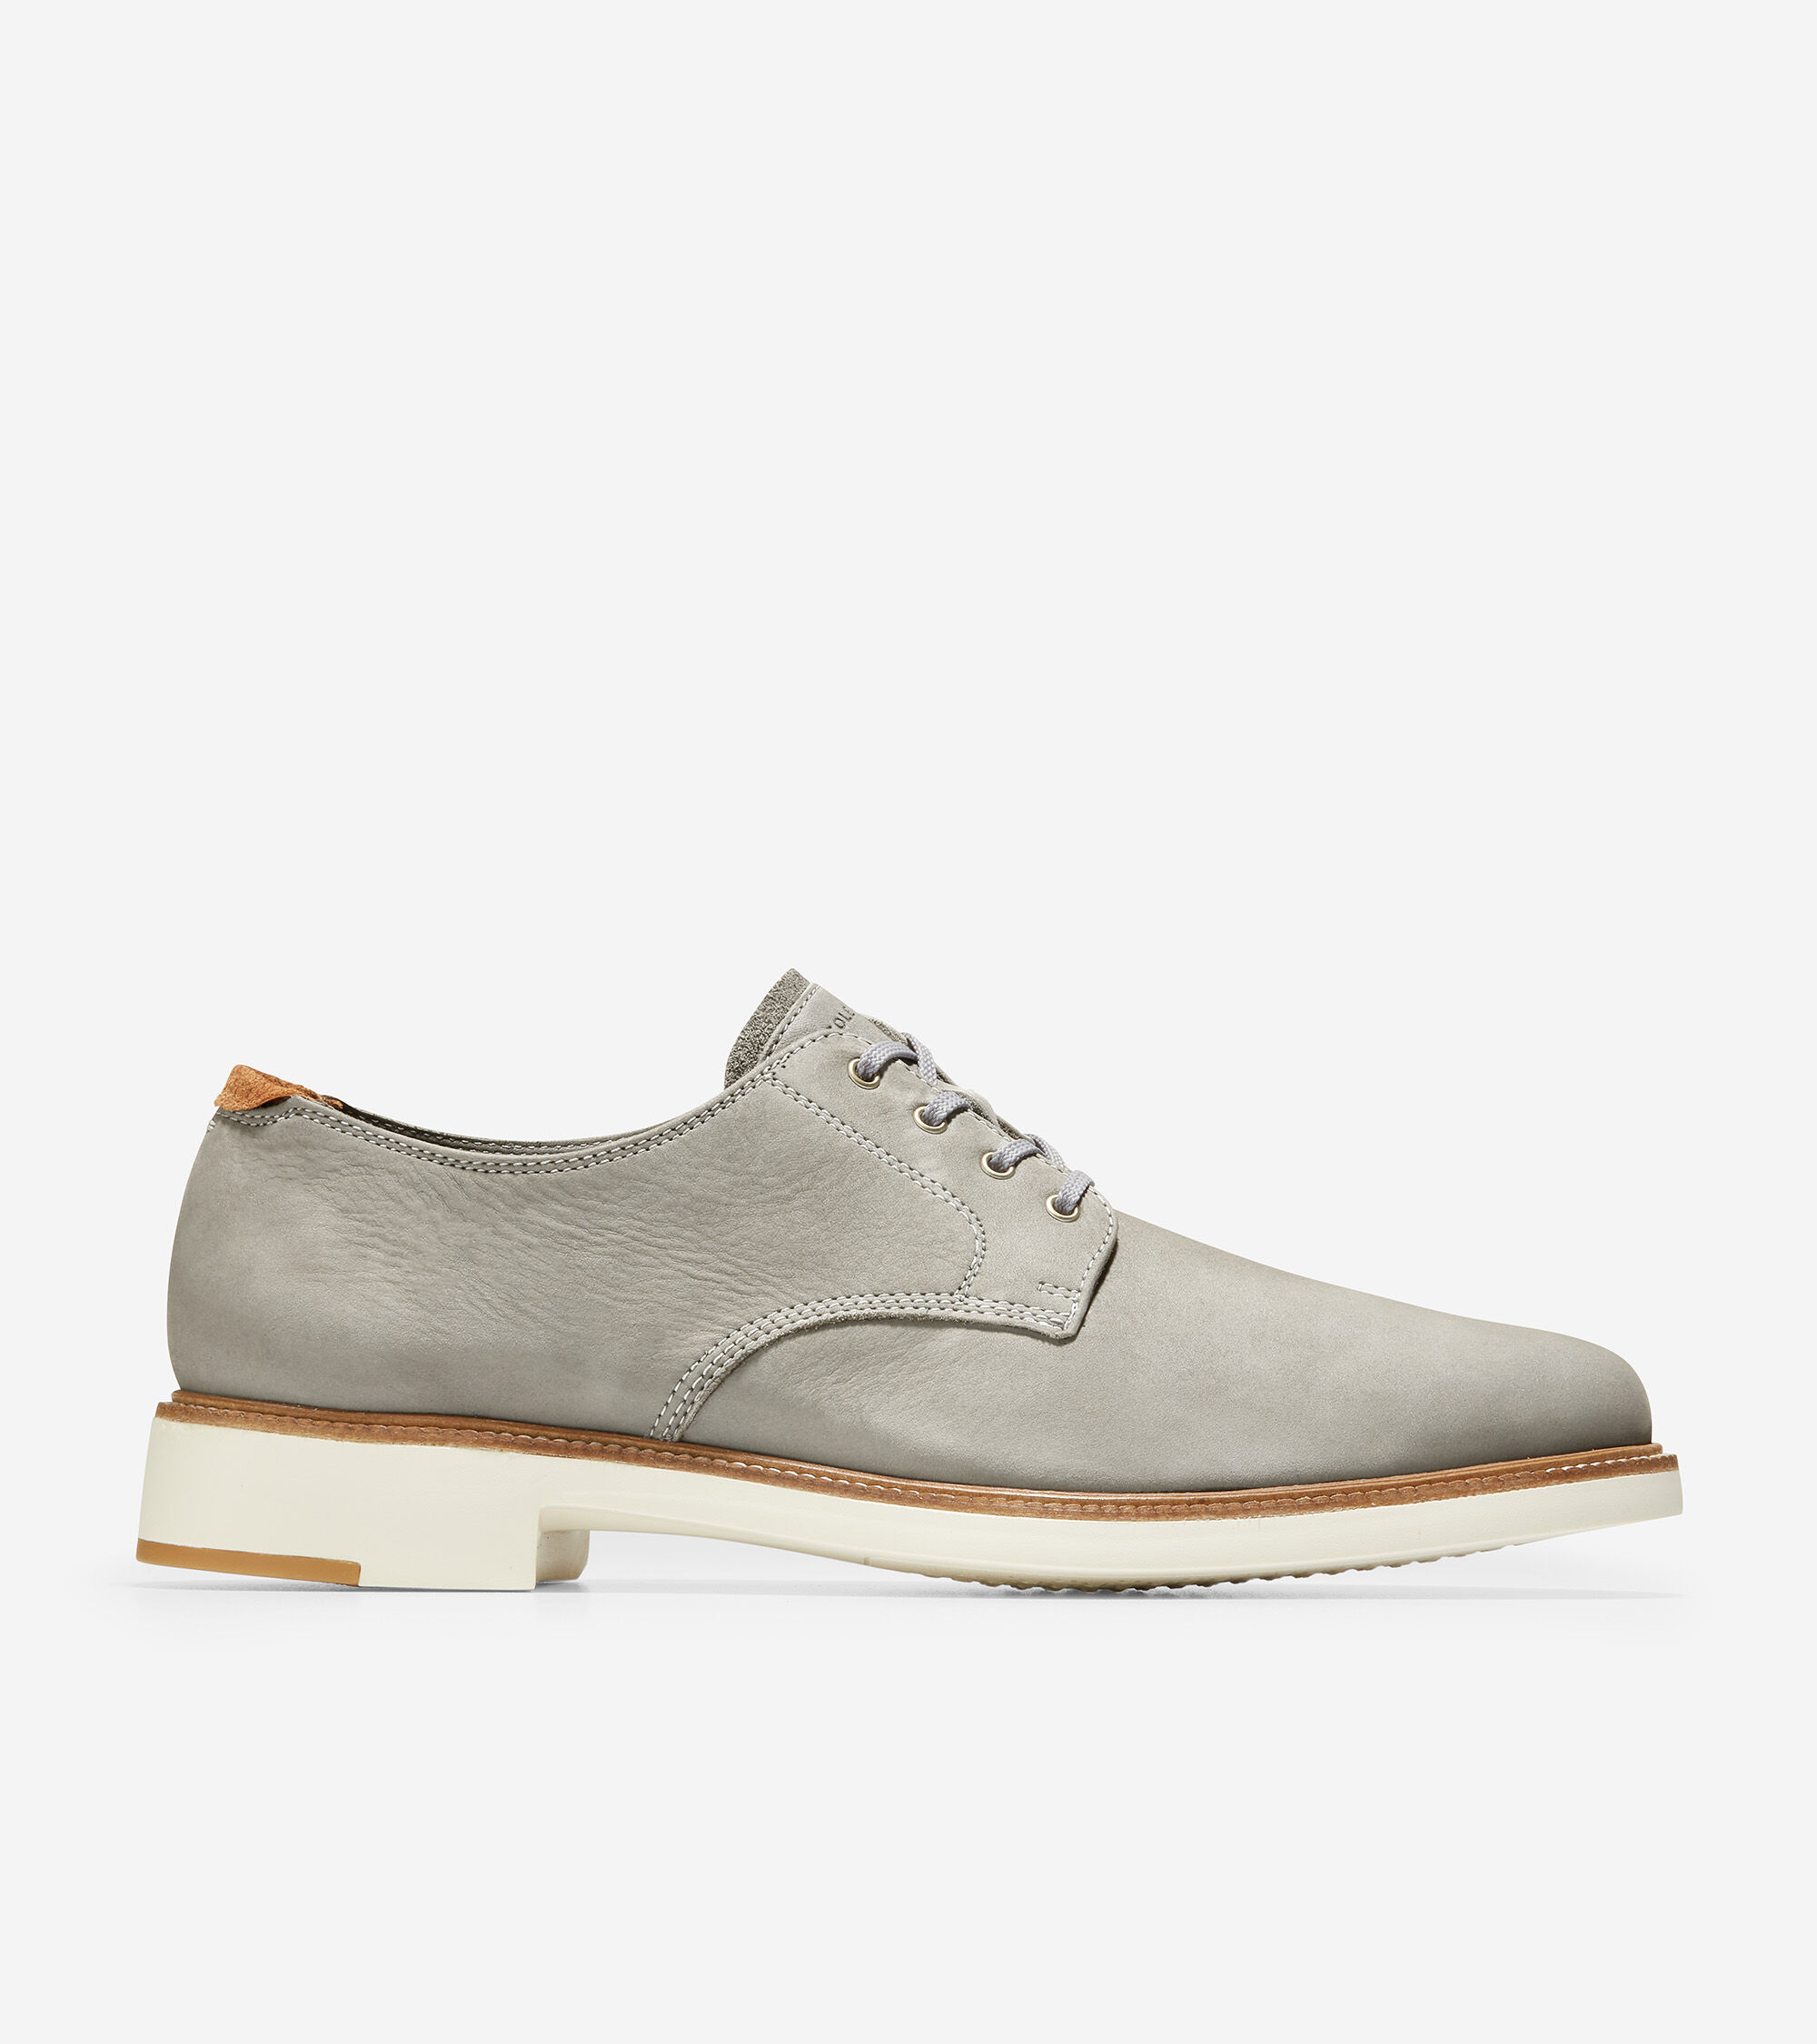 Cole Haan 7 DAY PLAIN TOE OXFORD